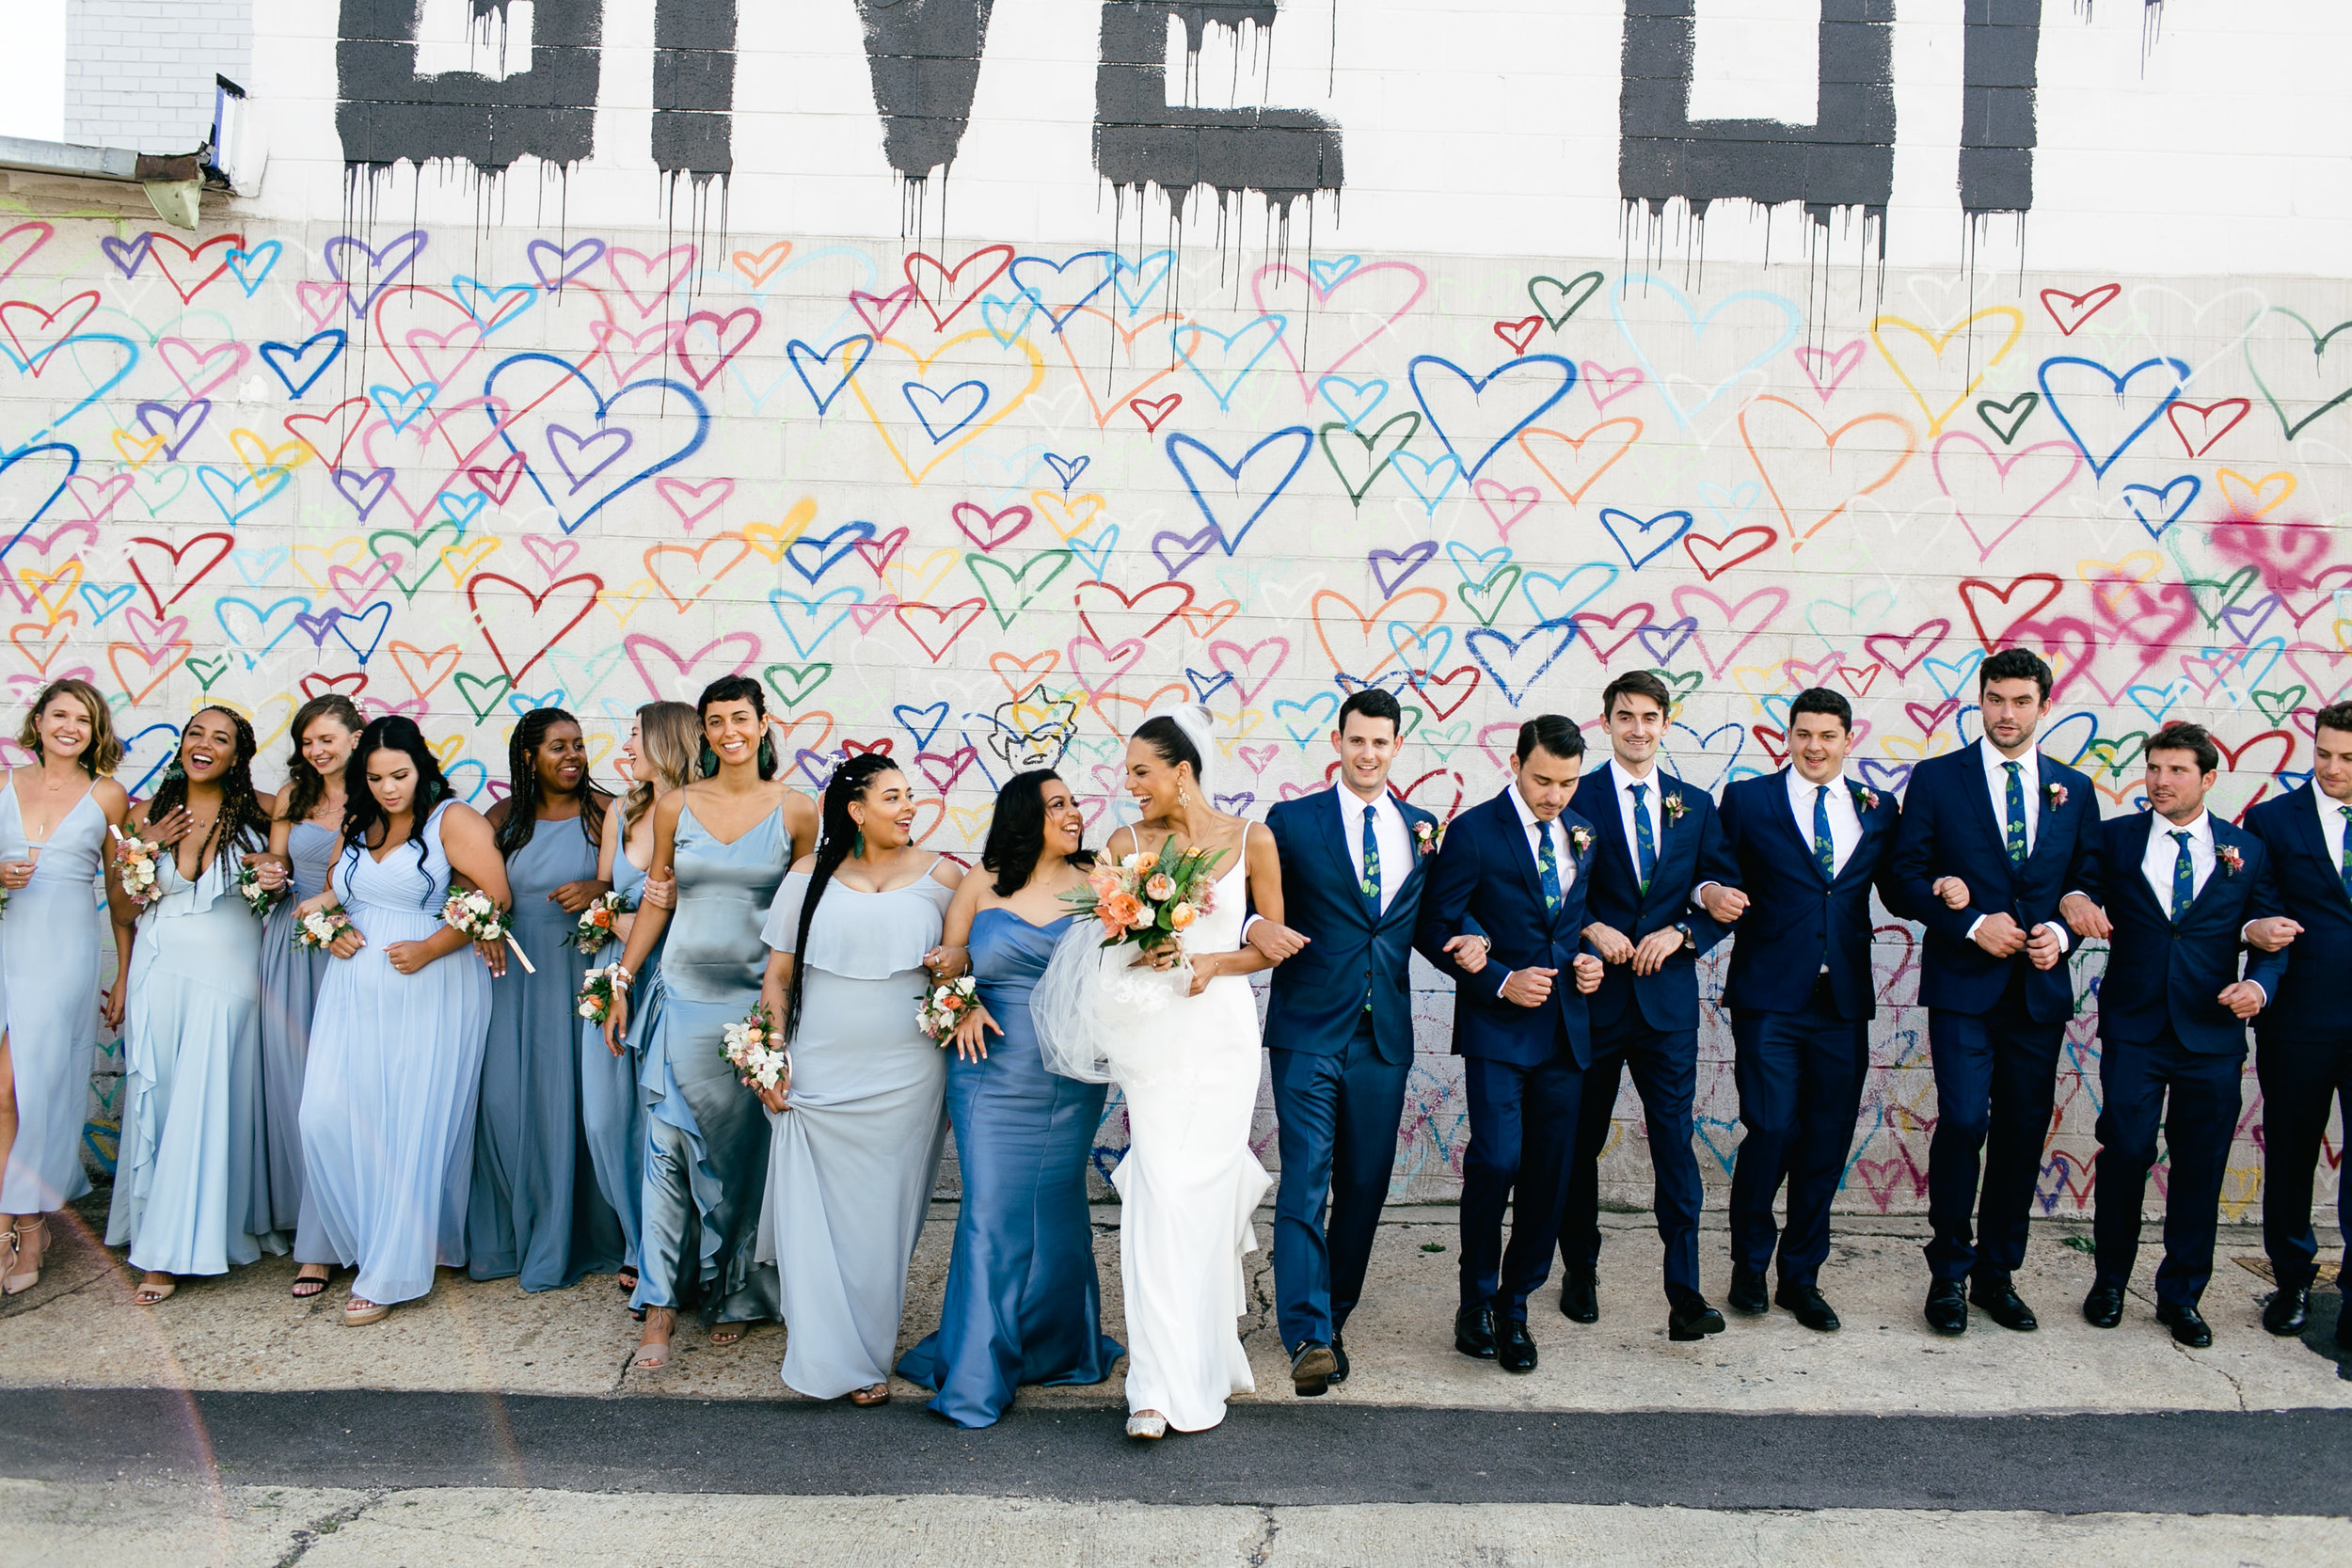 photography-wedding-weddings-natural-candid-dock 5 dc-washington dc-philadelphia-mixed race-editorial-modern-fine-art-028.JPG